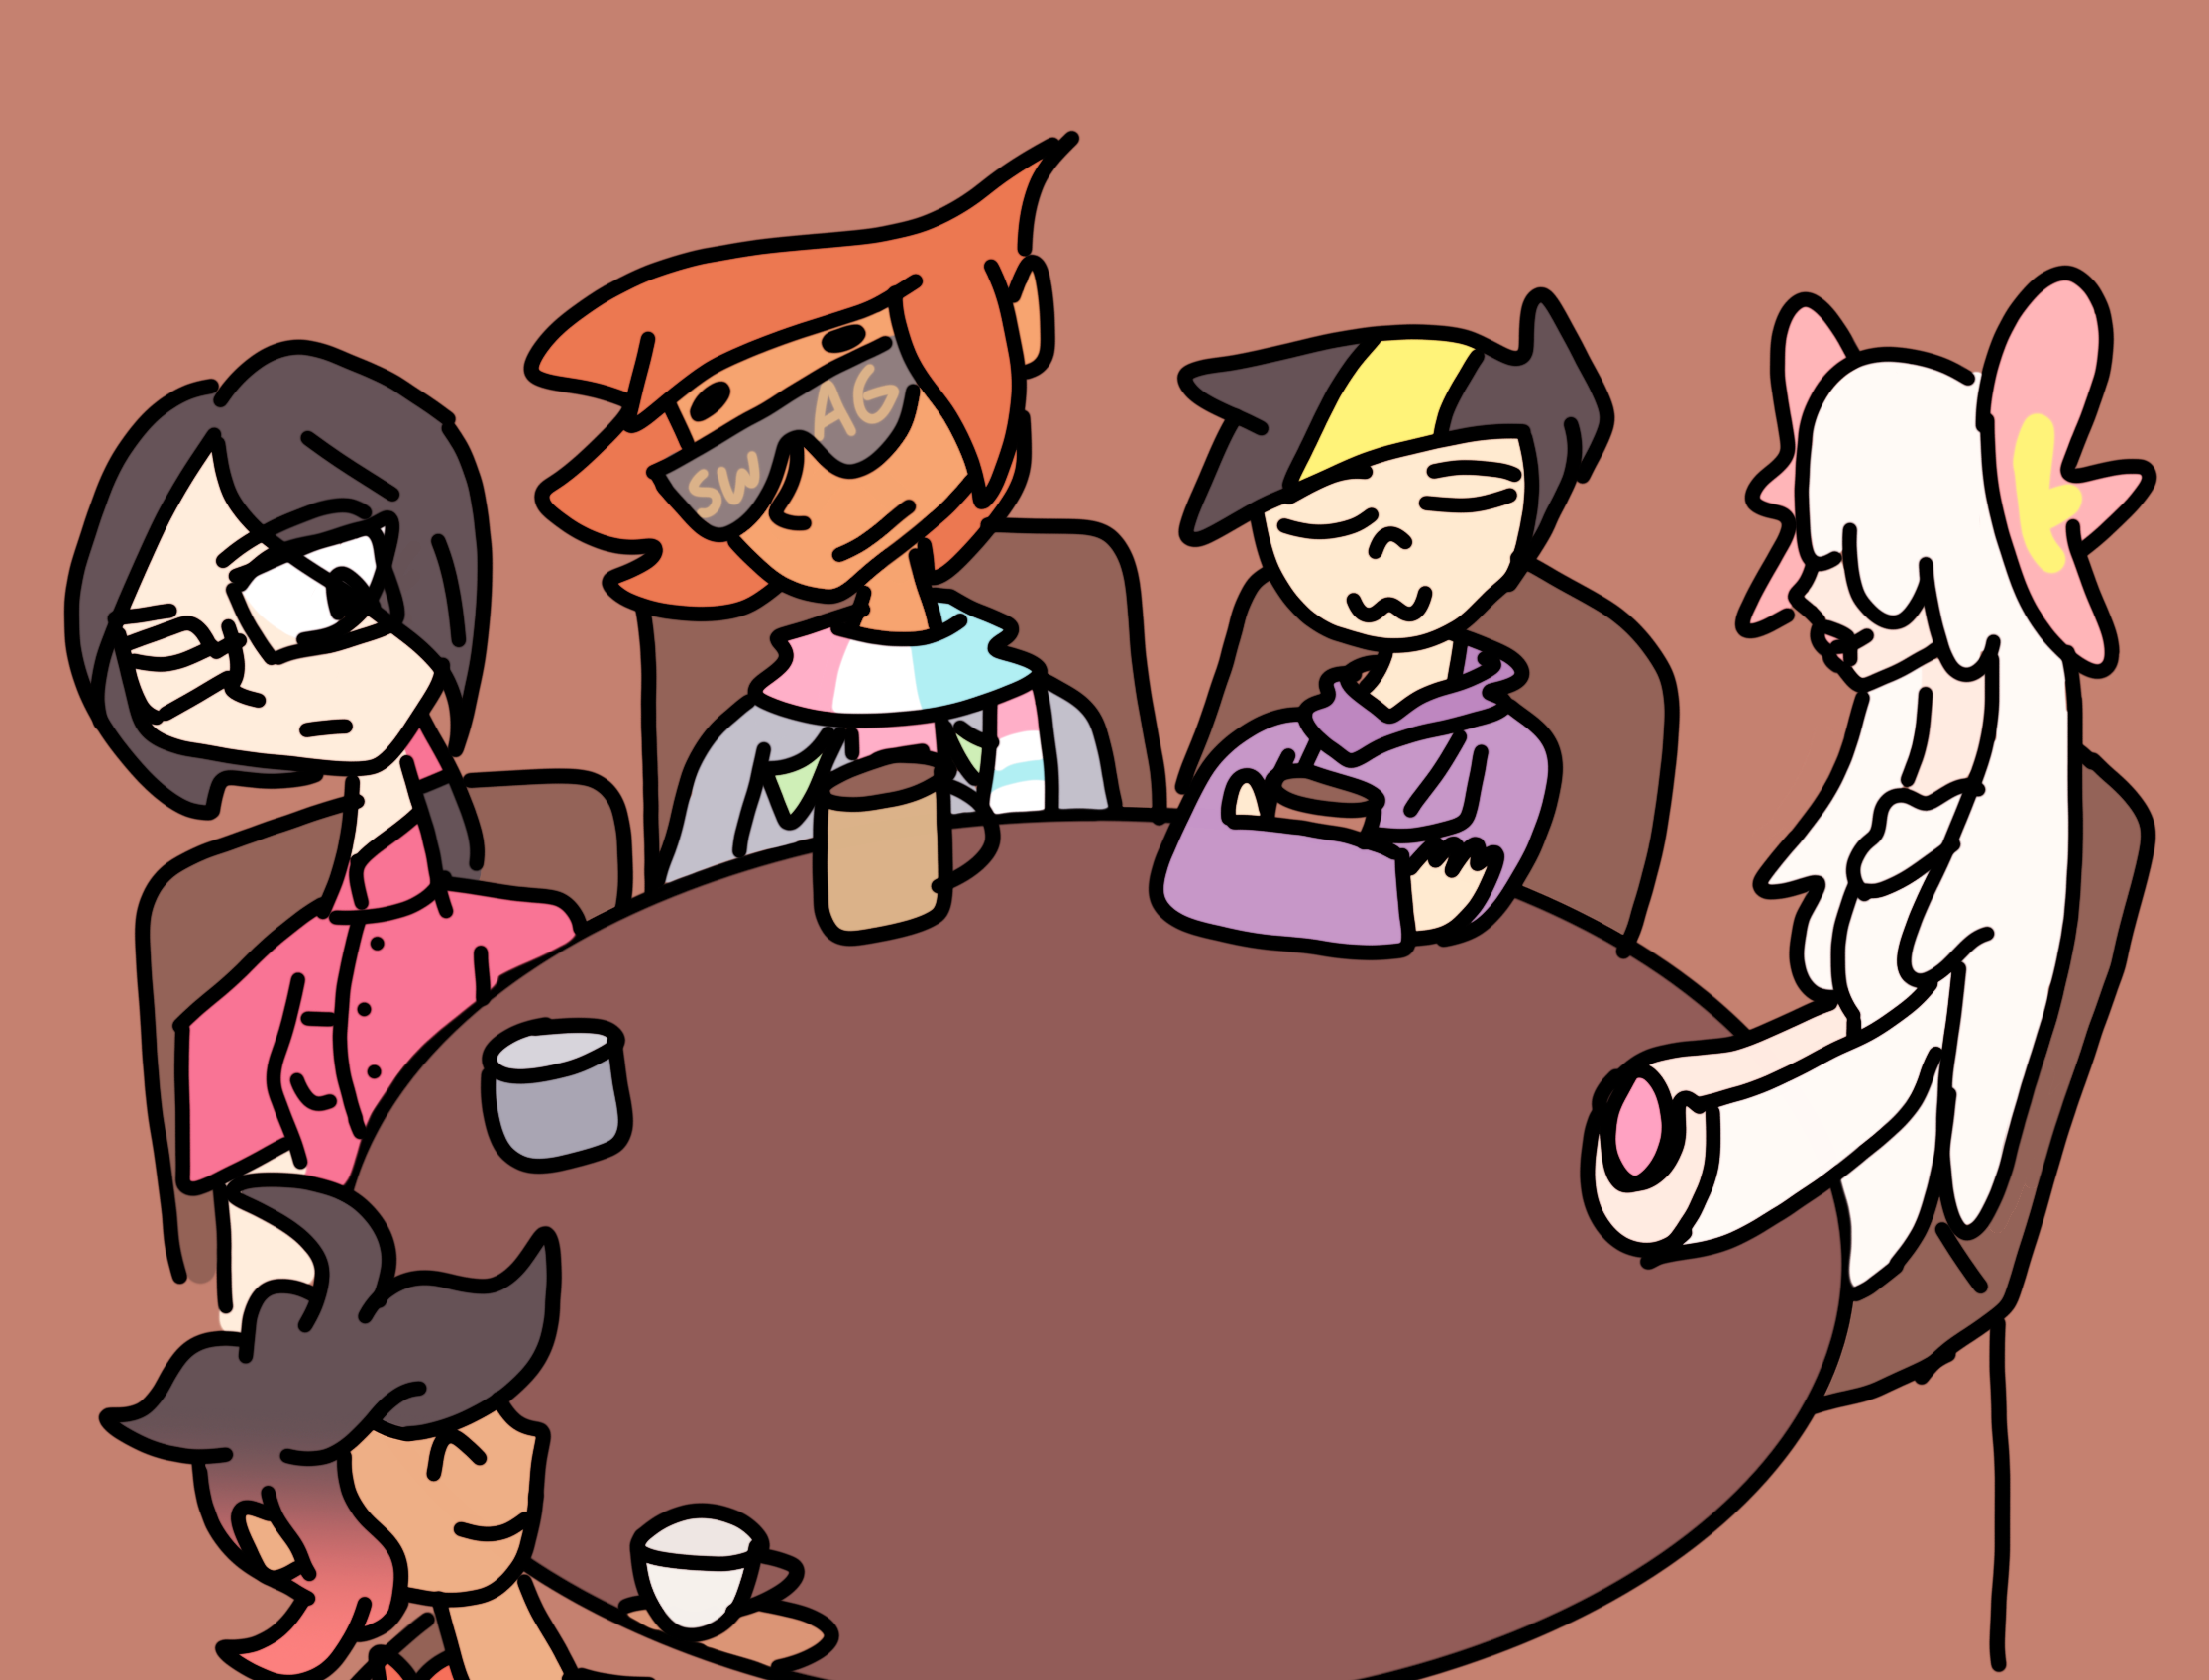 Rose, Glasses, Protagonist, Gear, and Blanche enjoy some drinks.